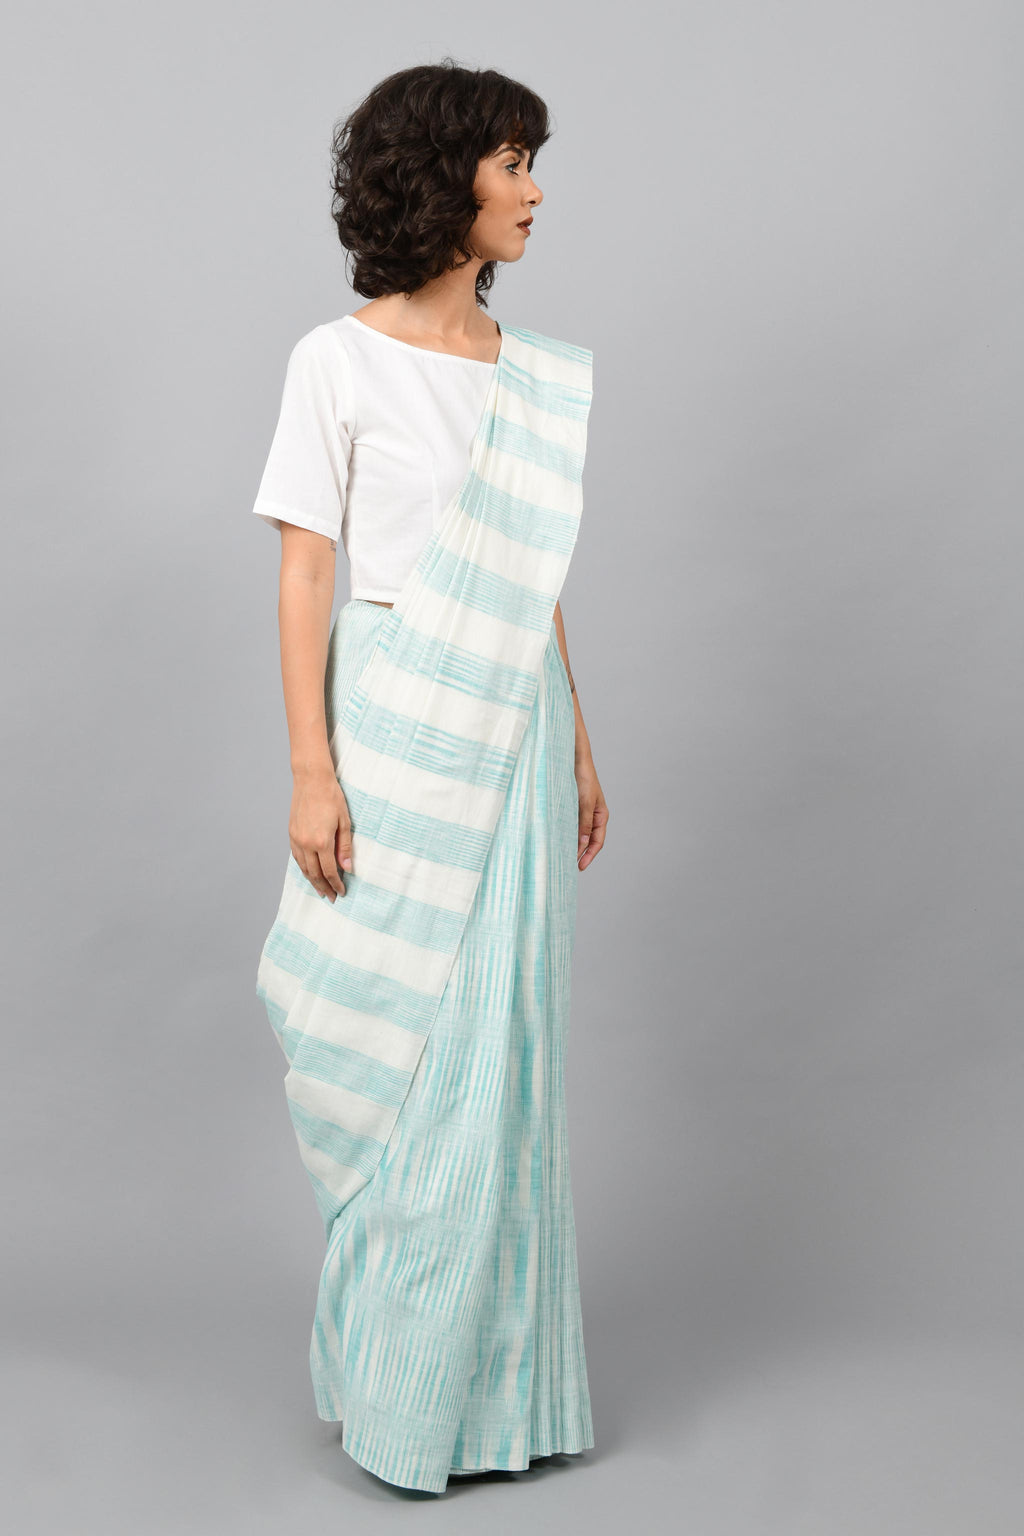 Side pose of a female womenswear fashion model draped in a aquamarine blue & white space dyed homespun and handwoven cotton sari by Cotton Rack.